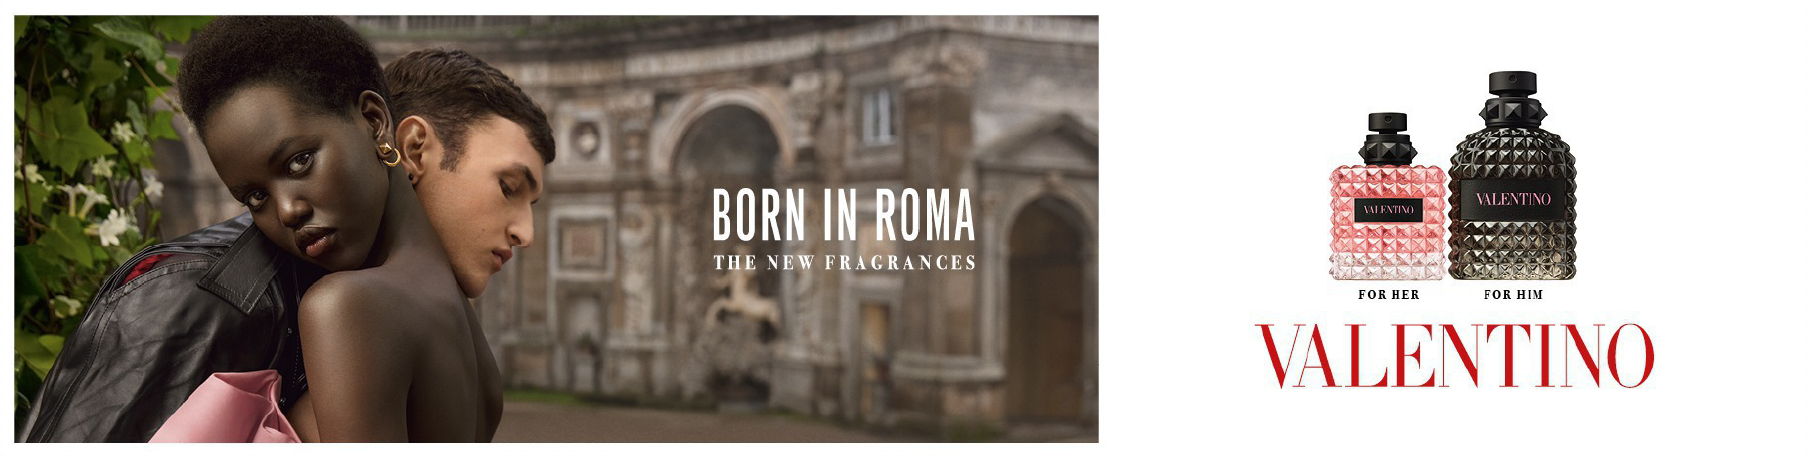 Born in Roma Valentino